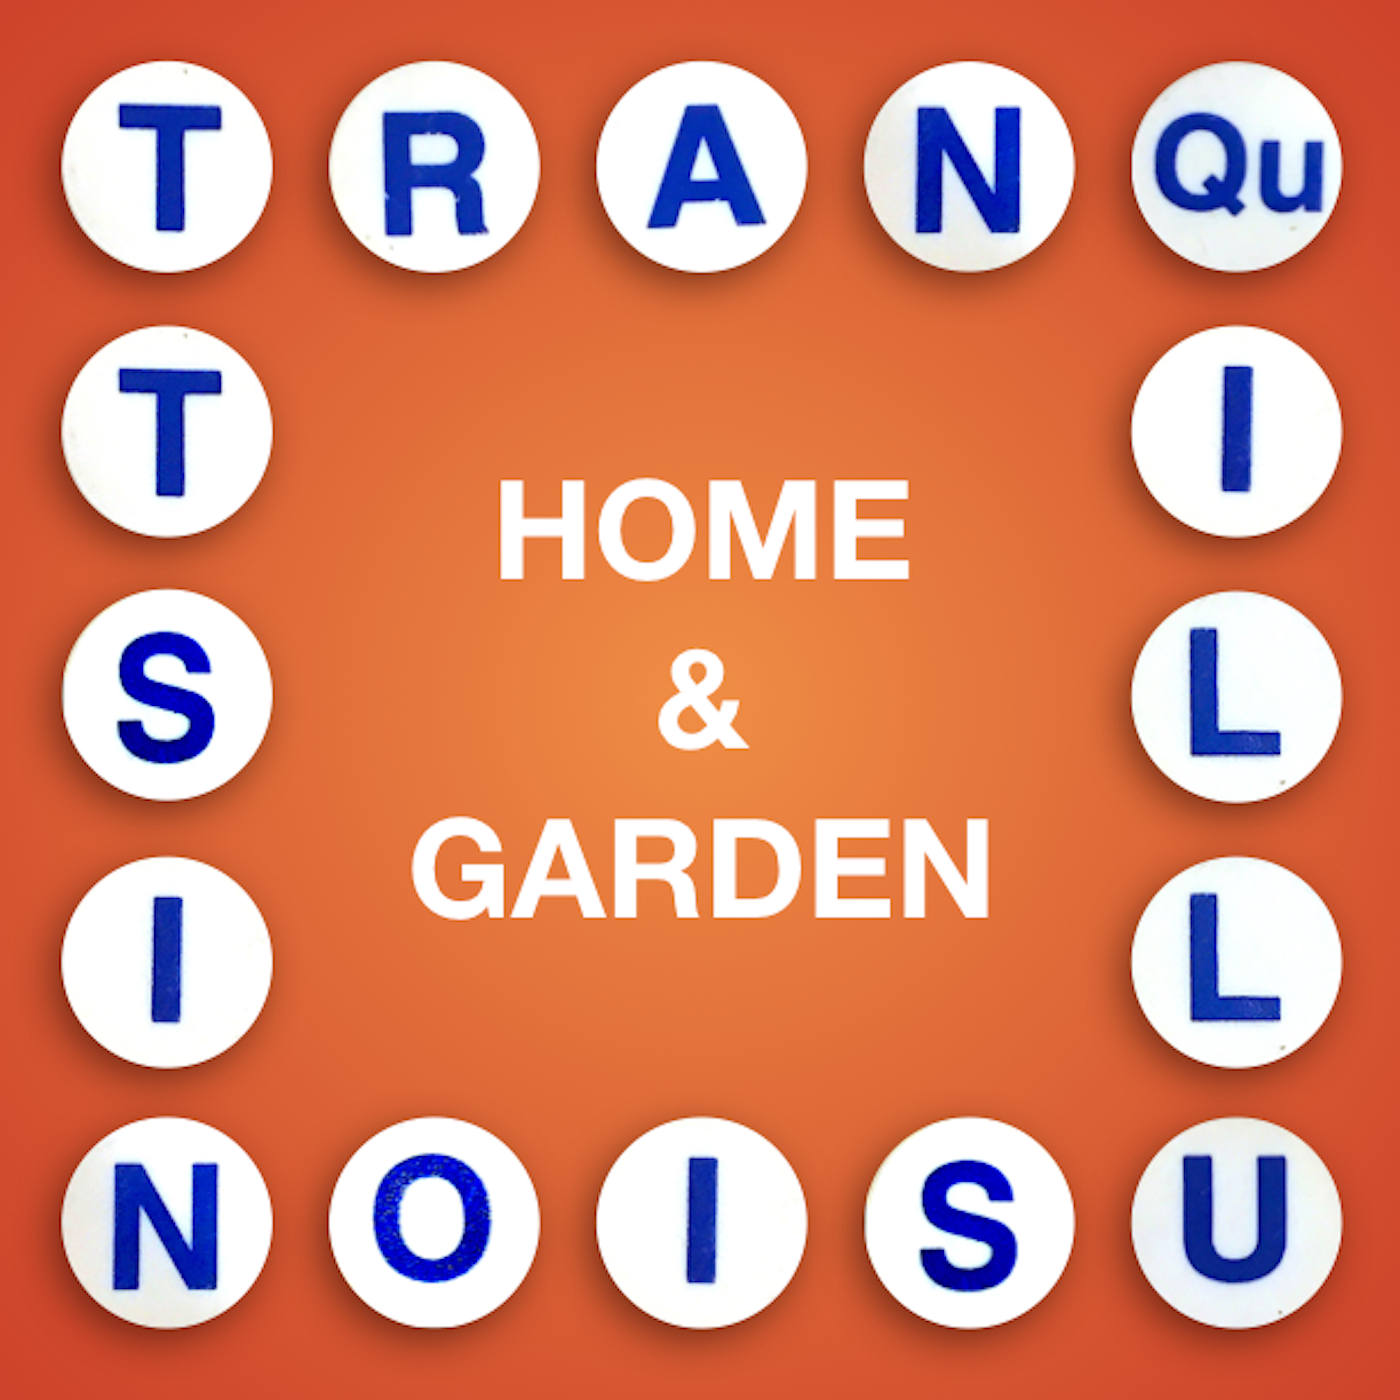 Tranquillusionist: Home and Garden